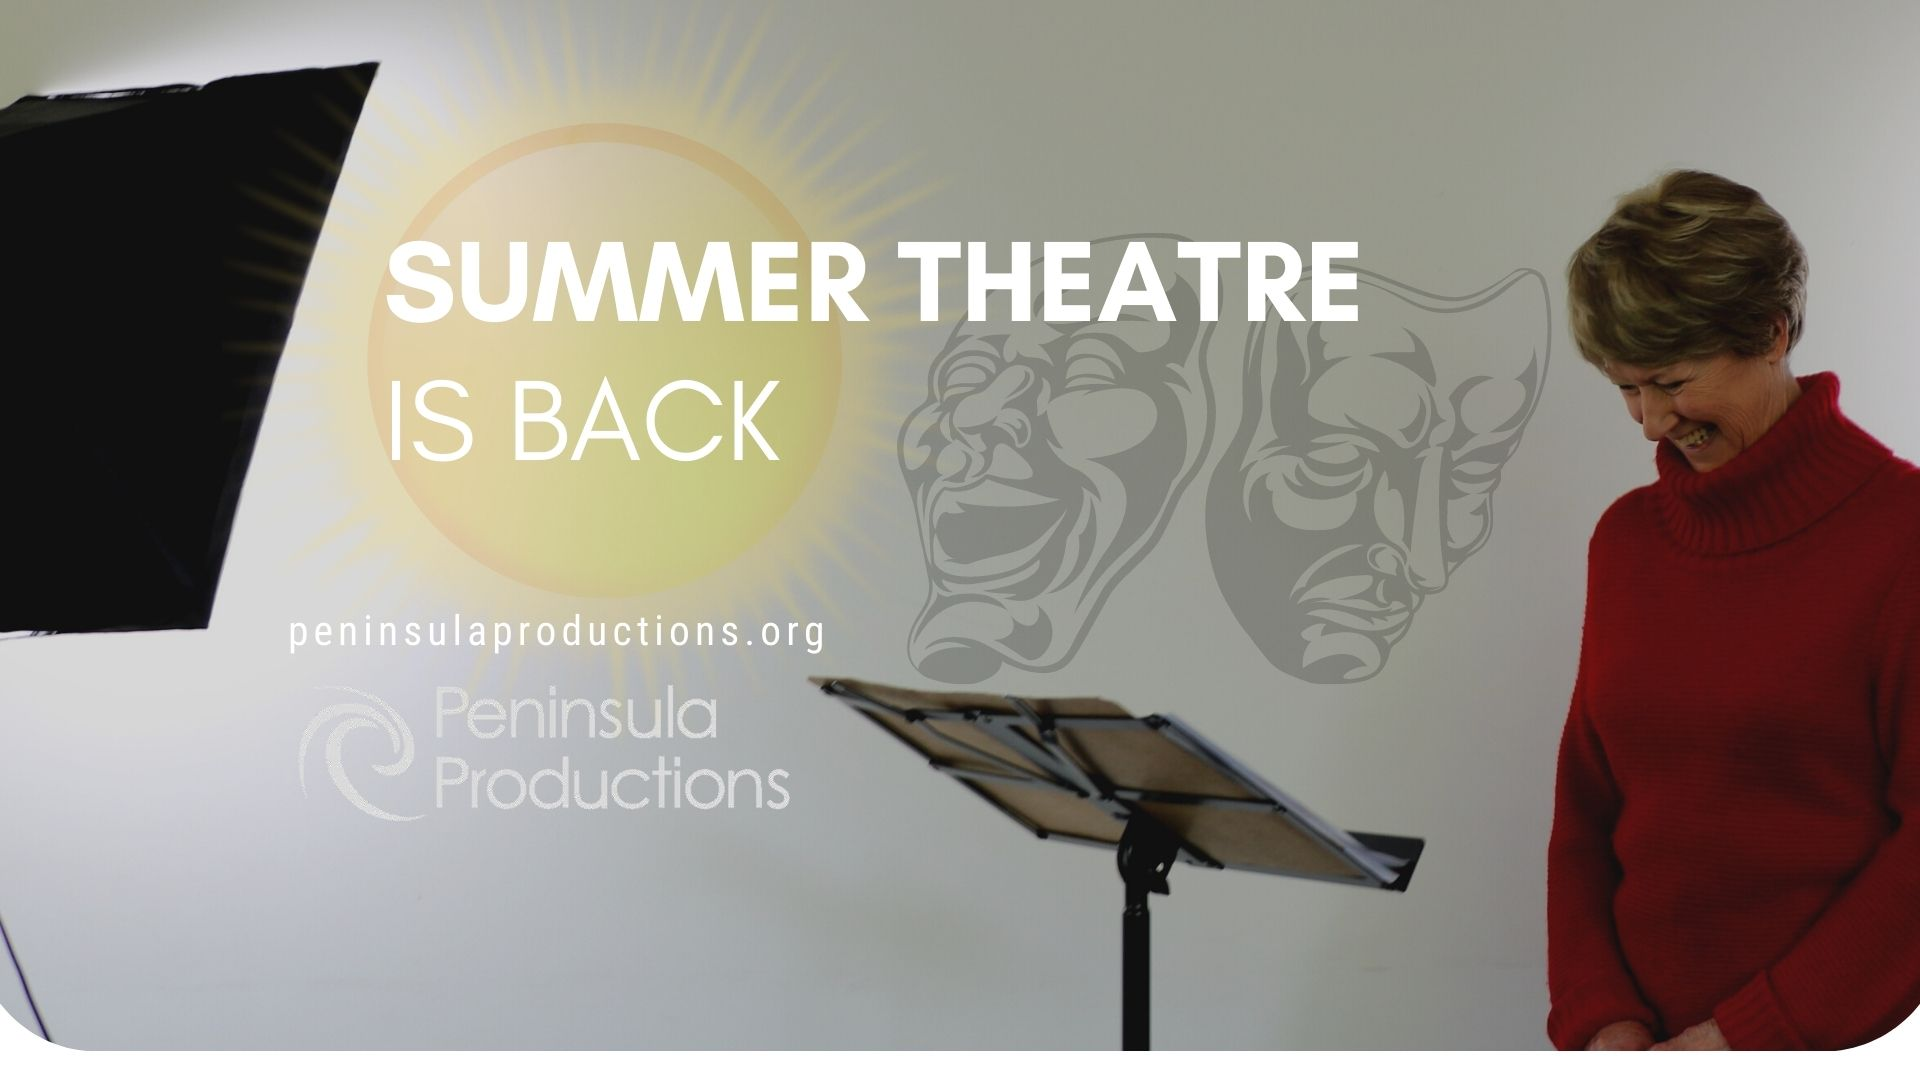 Live Theatre Returns to Peninsula Productions This Month